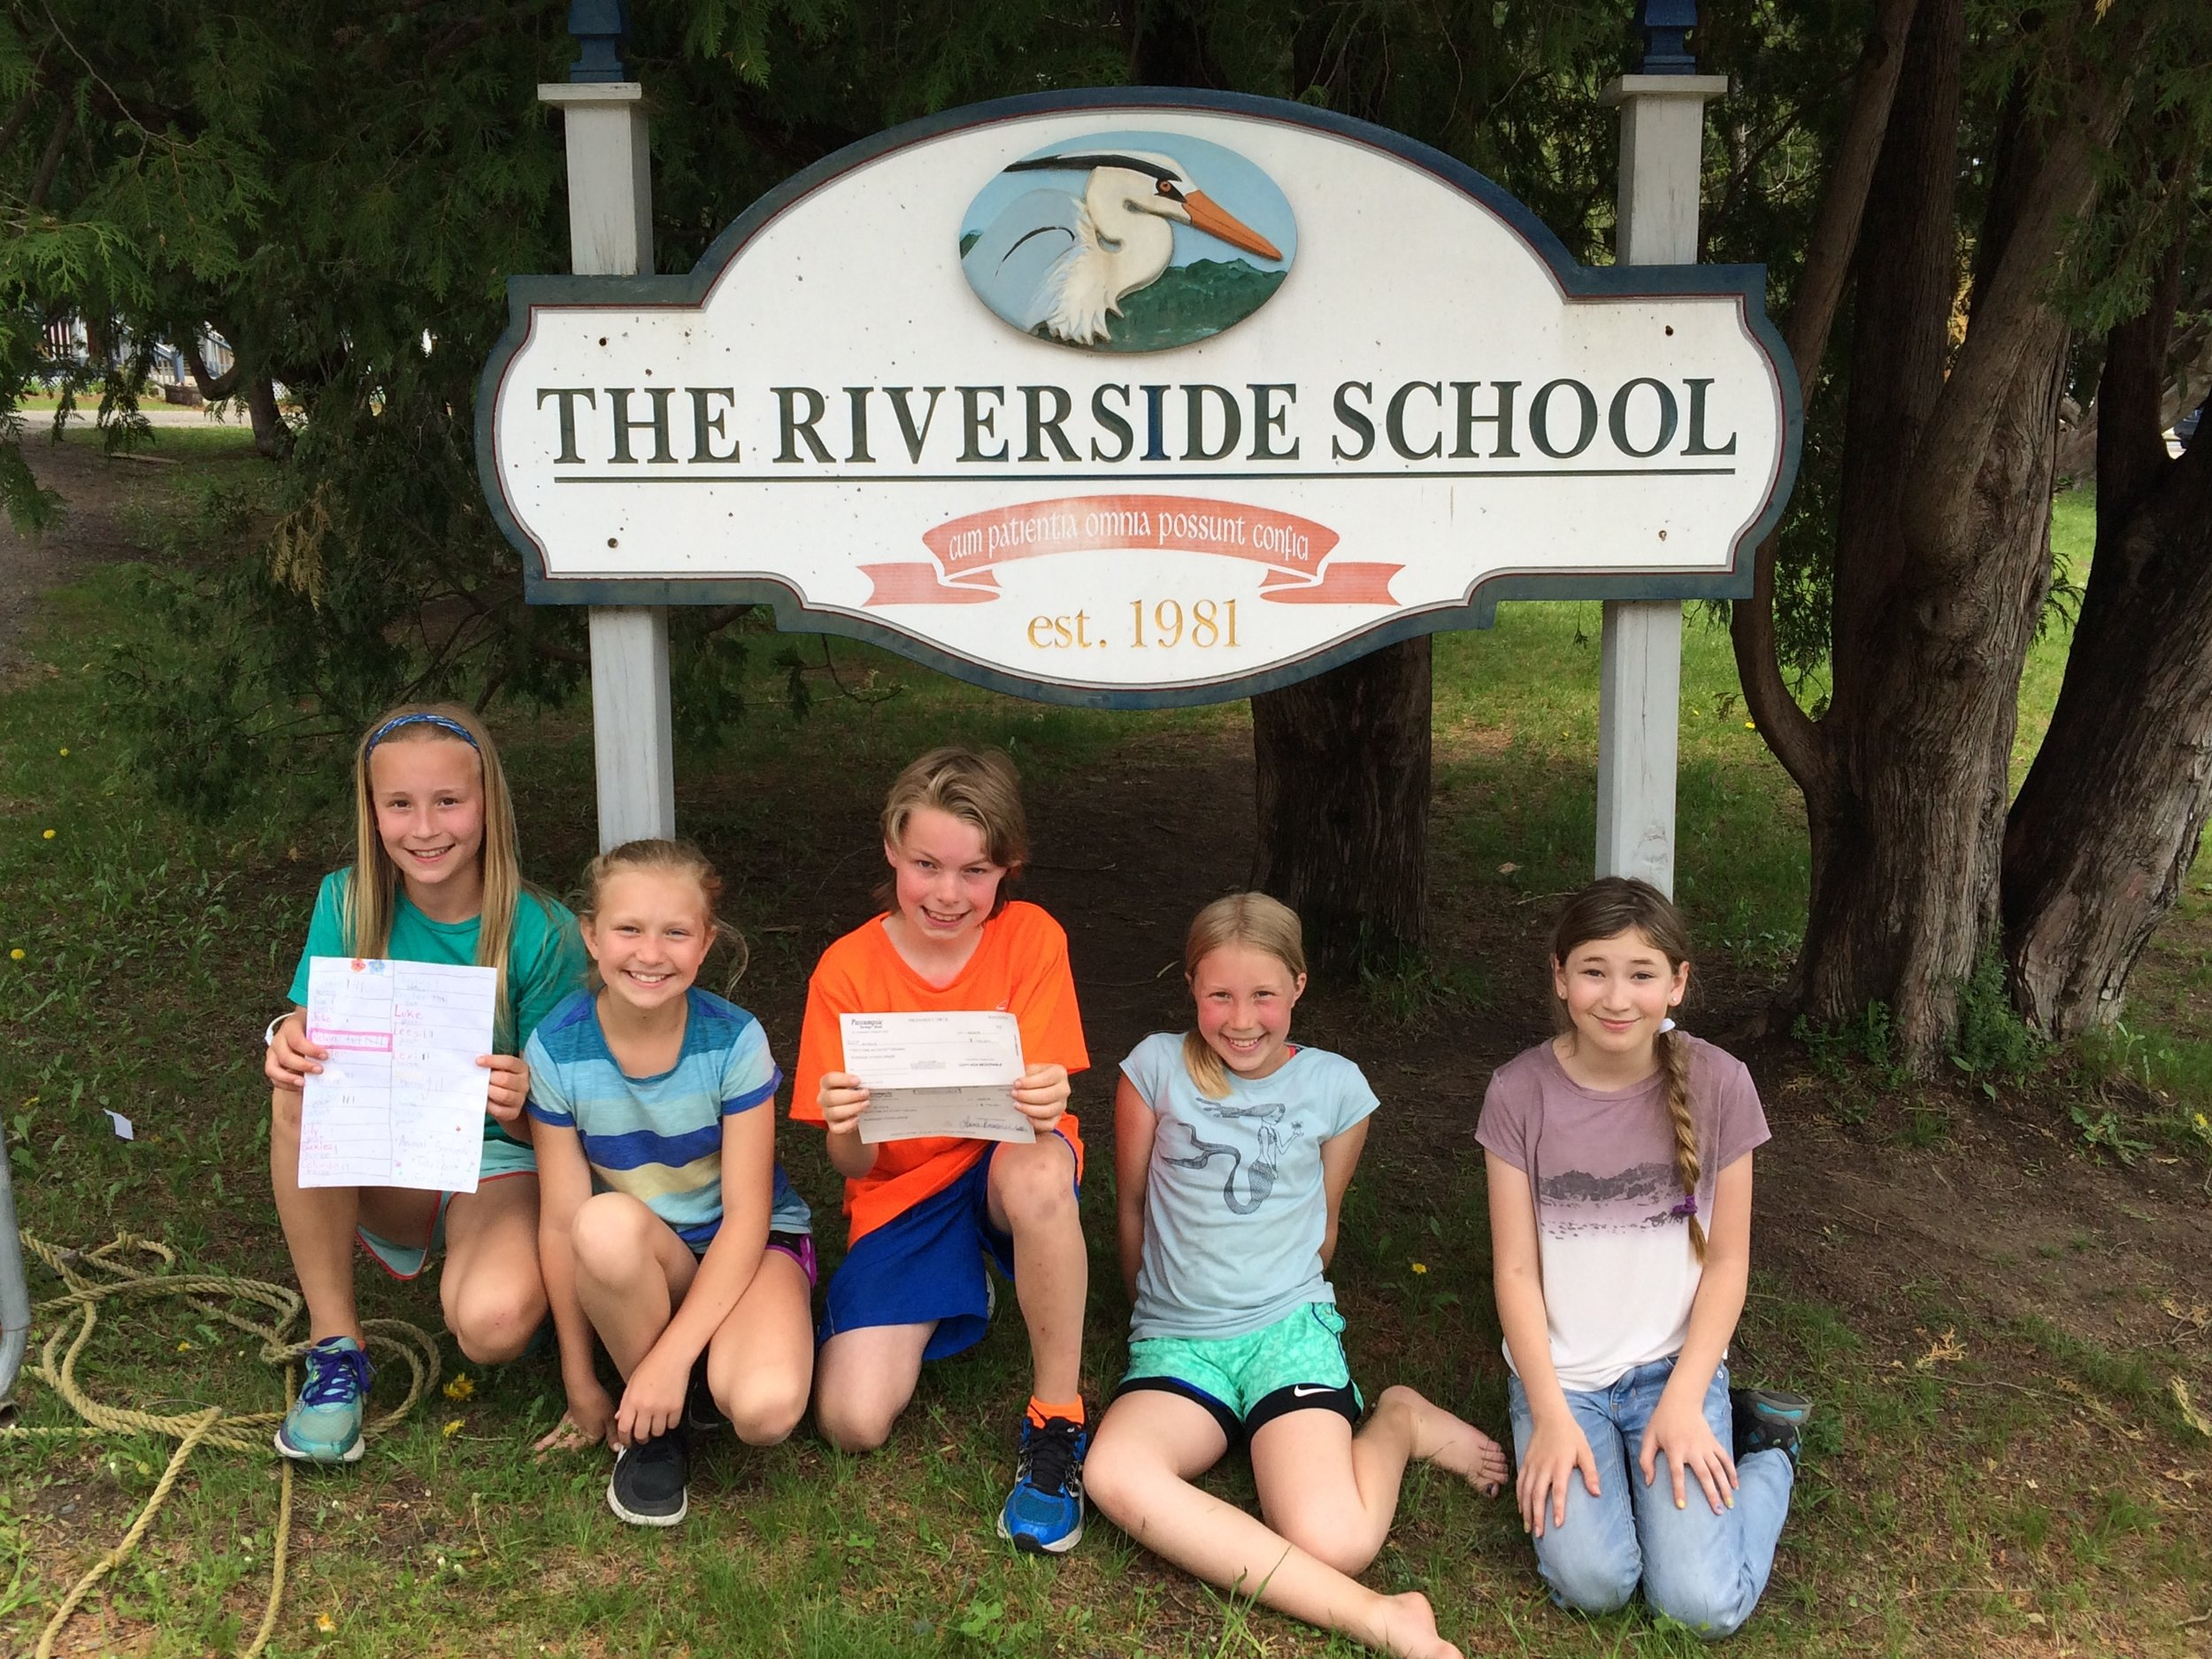 From left to right: Maren Giese, Ruby Rolfe, Colter Thibaudeau, Riley Miller, Tegan Harlow